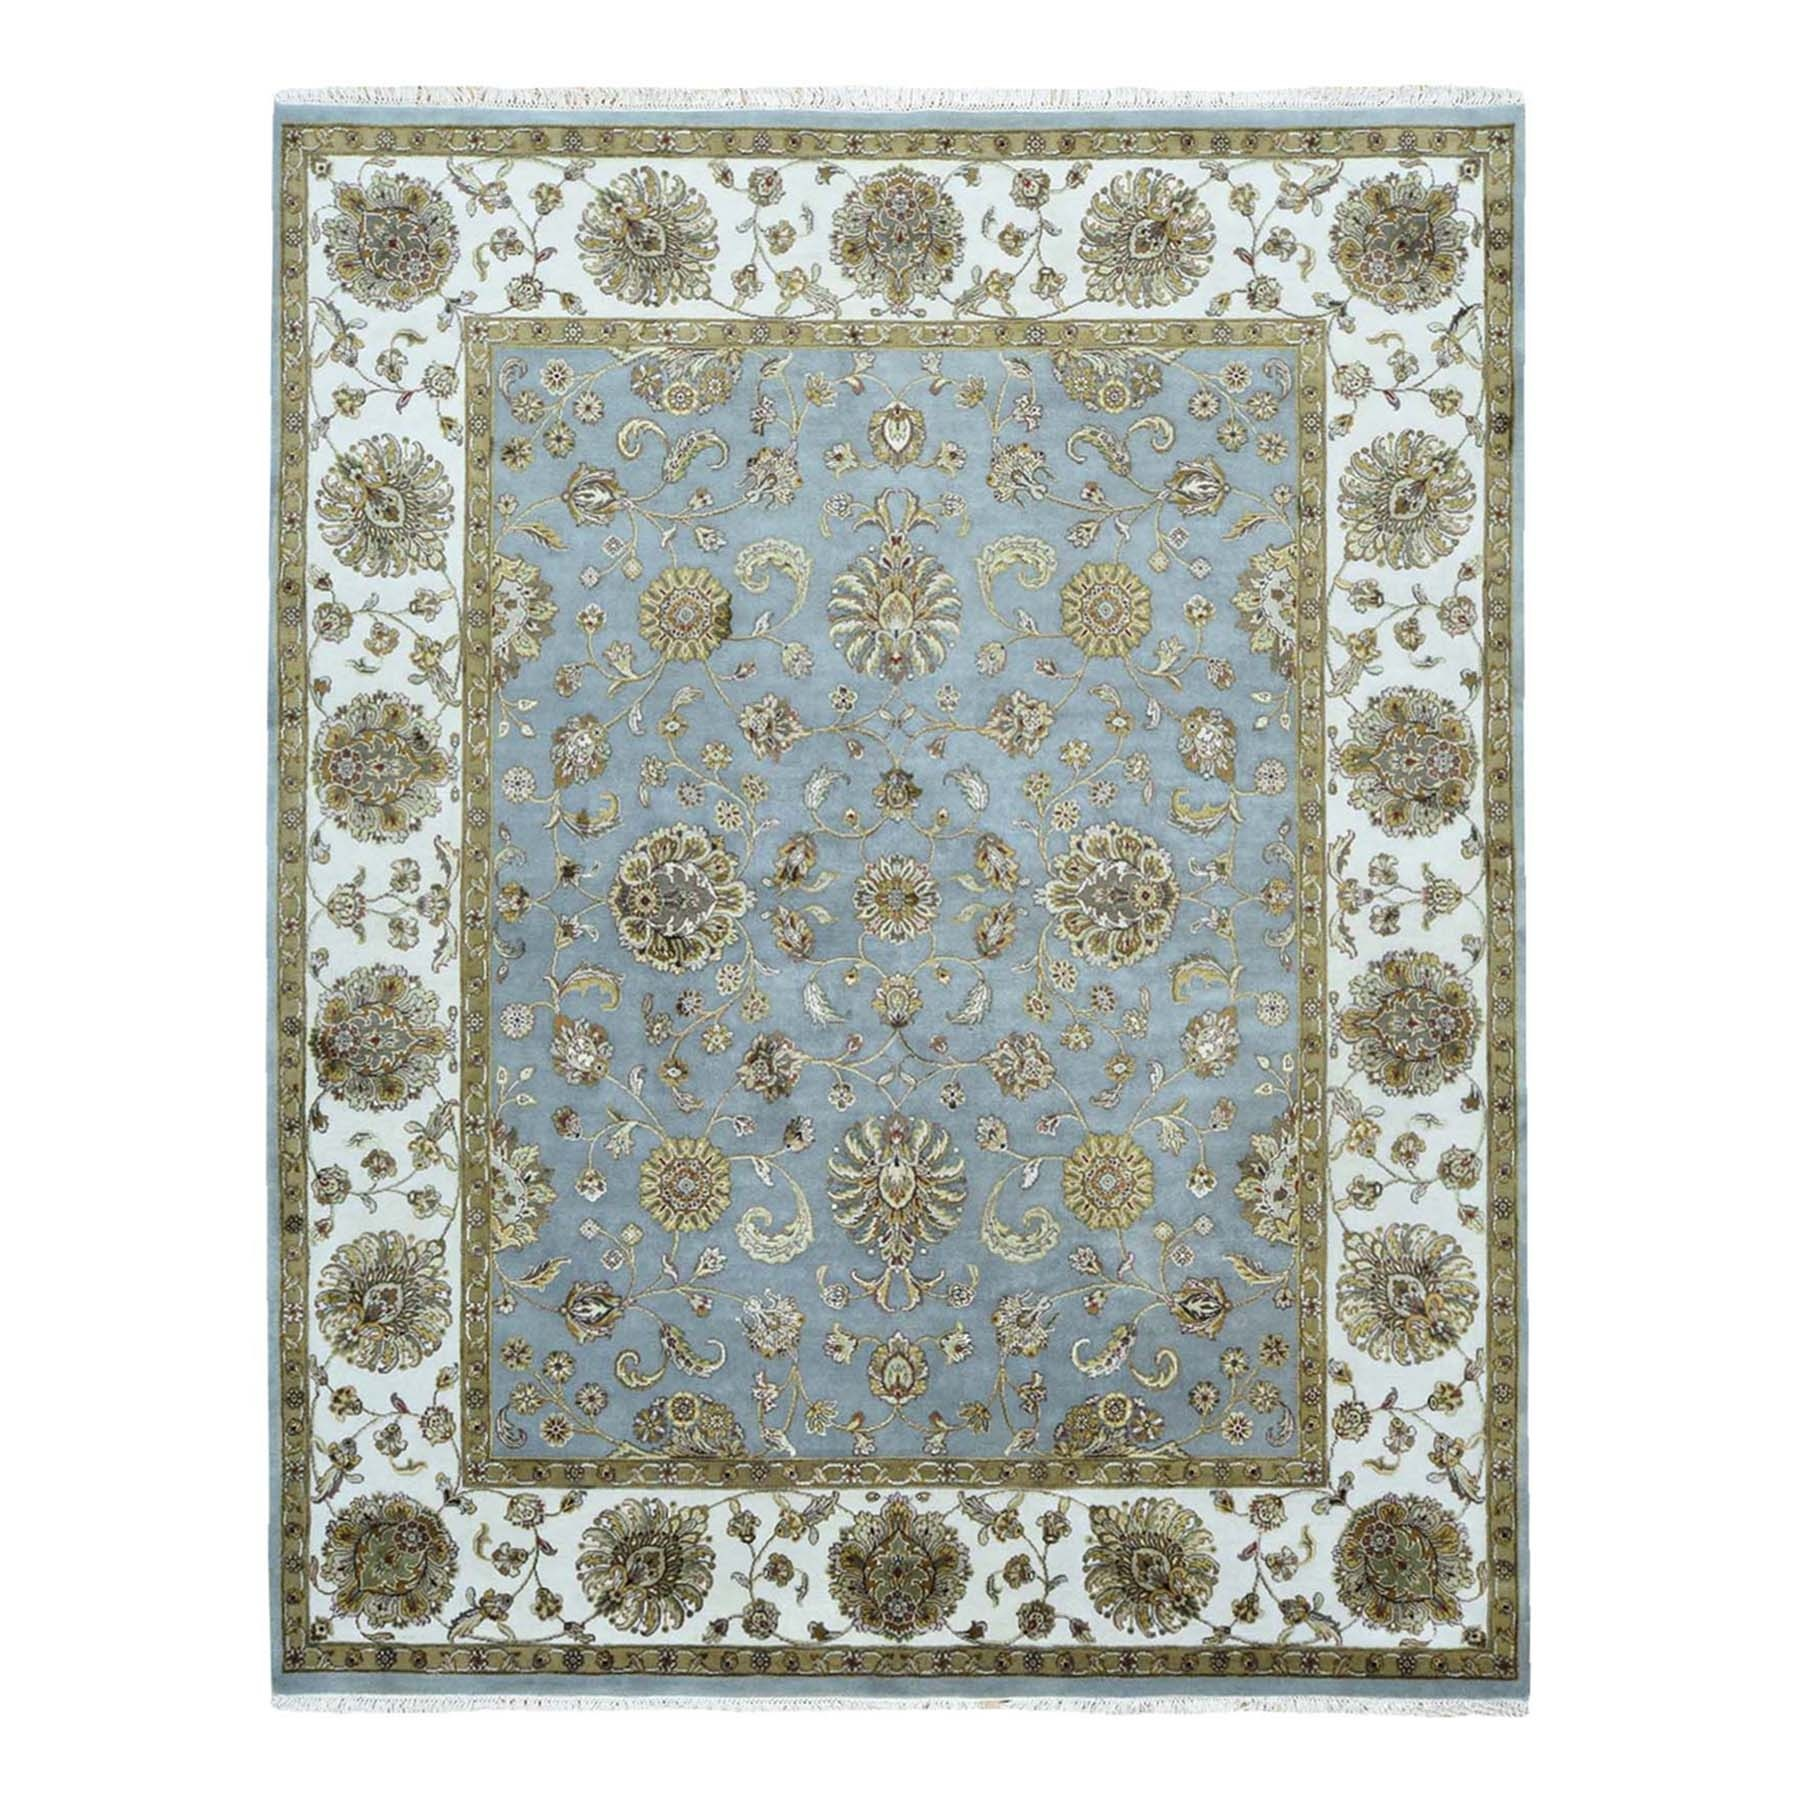 8'x10' Half Wool And Half Silk Hand-Knotted Rajasthan Silk Flower Rug